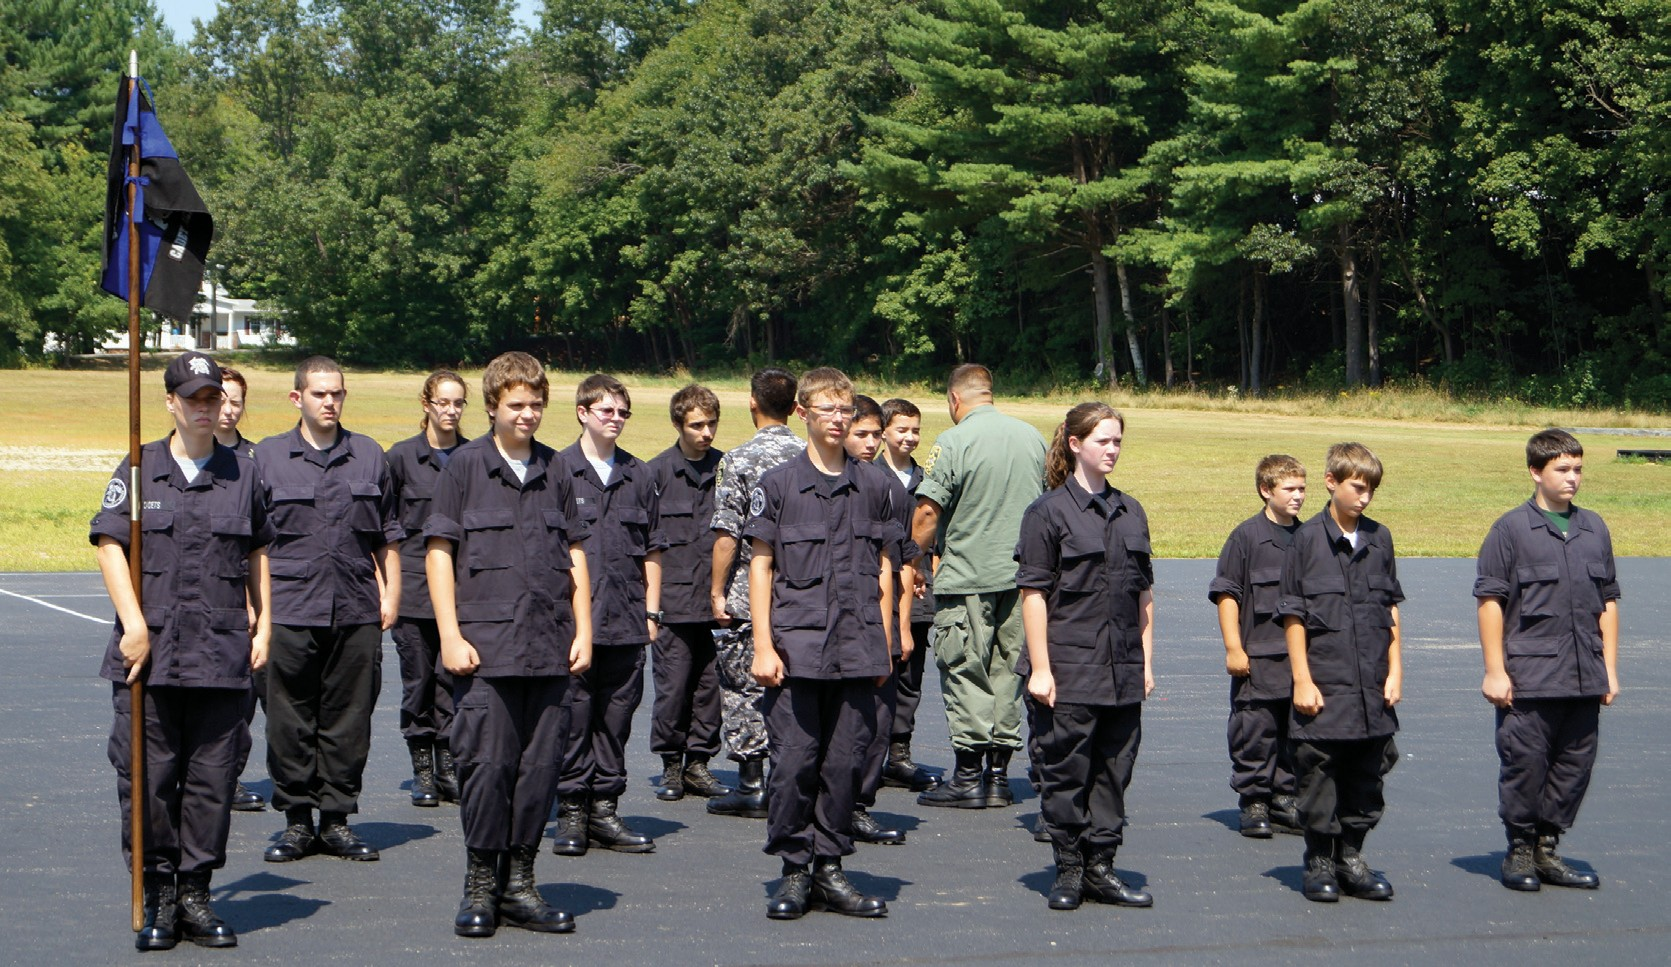 It was inspection time for graduates of the Summer Youth Police Cadet Academy back in the summer of 2013. The program may get a financial boost Tuesday night, pending a vote of the City Council to transfer funds from an unused teen center account to the program.